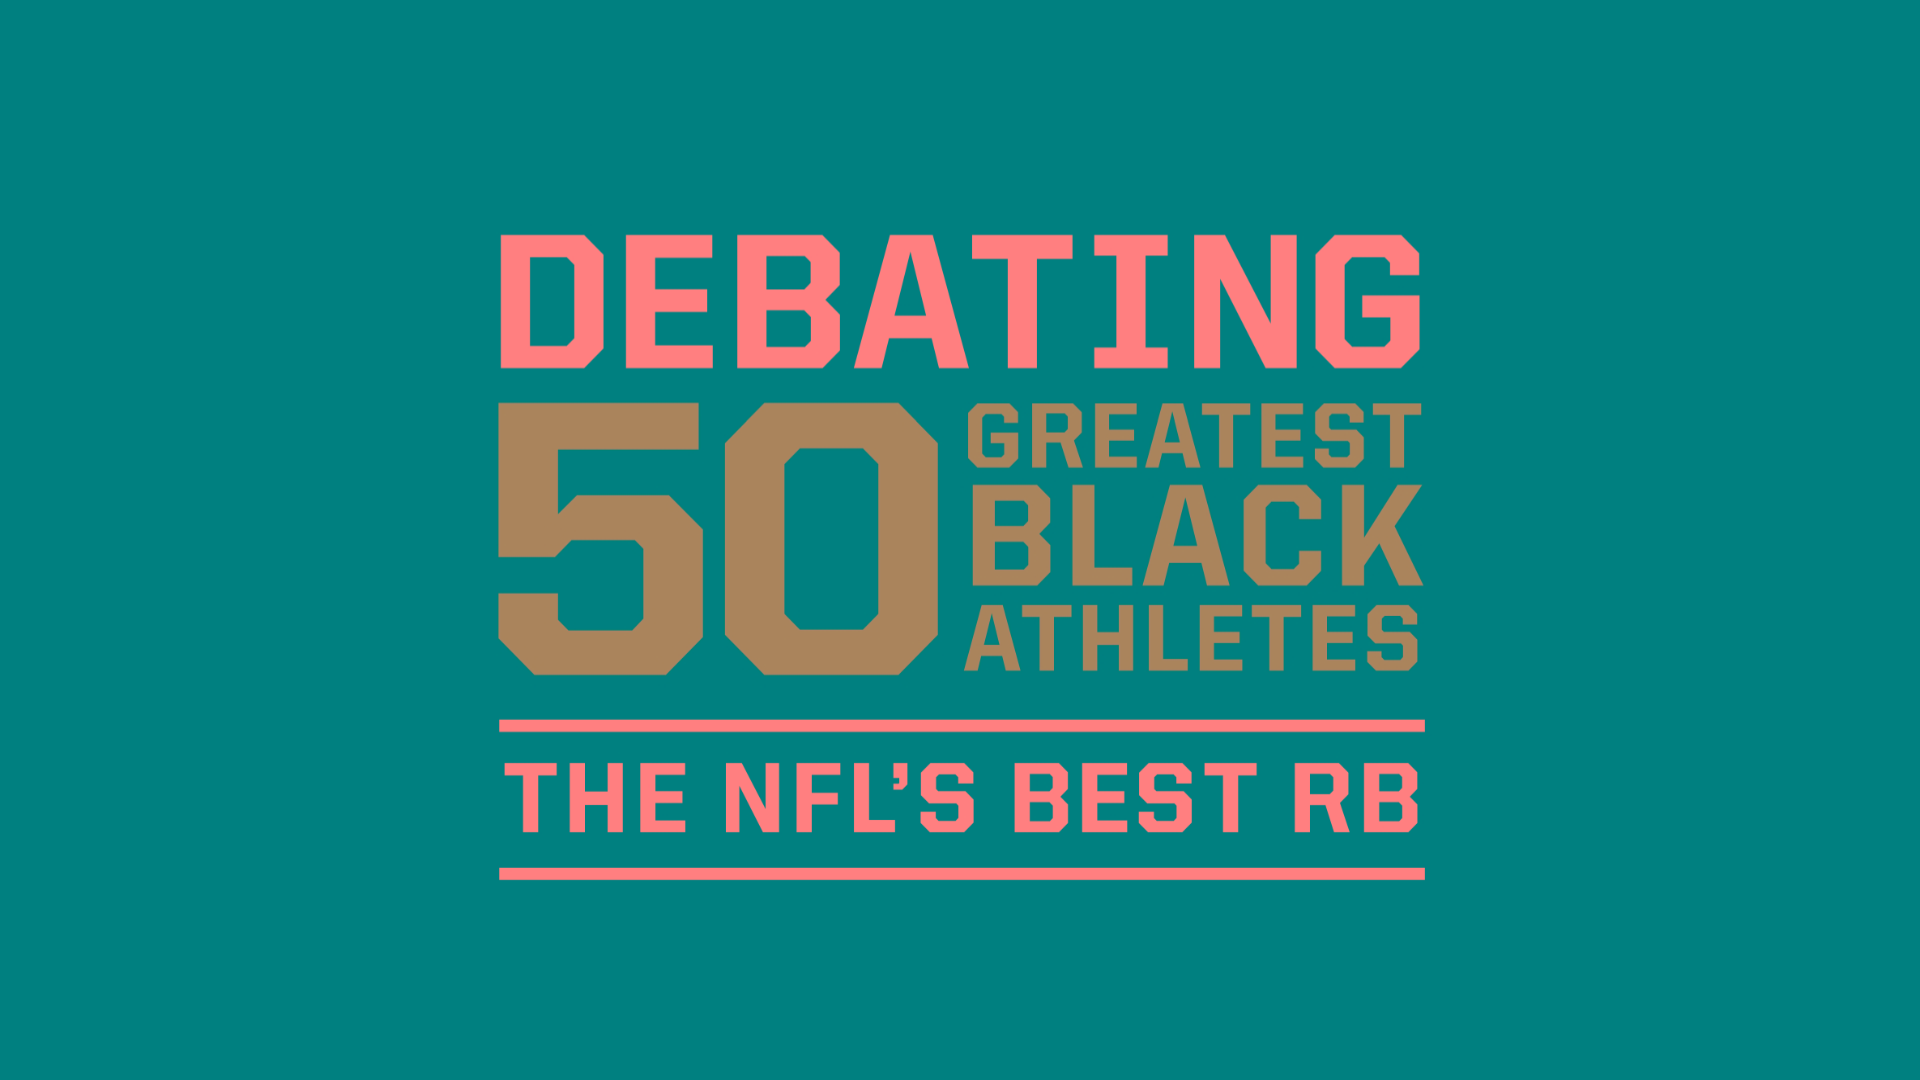 low priced 1223f 97336 50 Greatest Black Athletes debate  The NFL s best RB